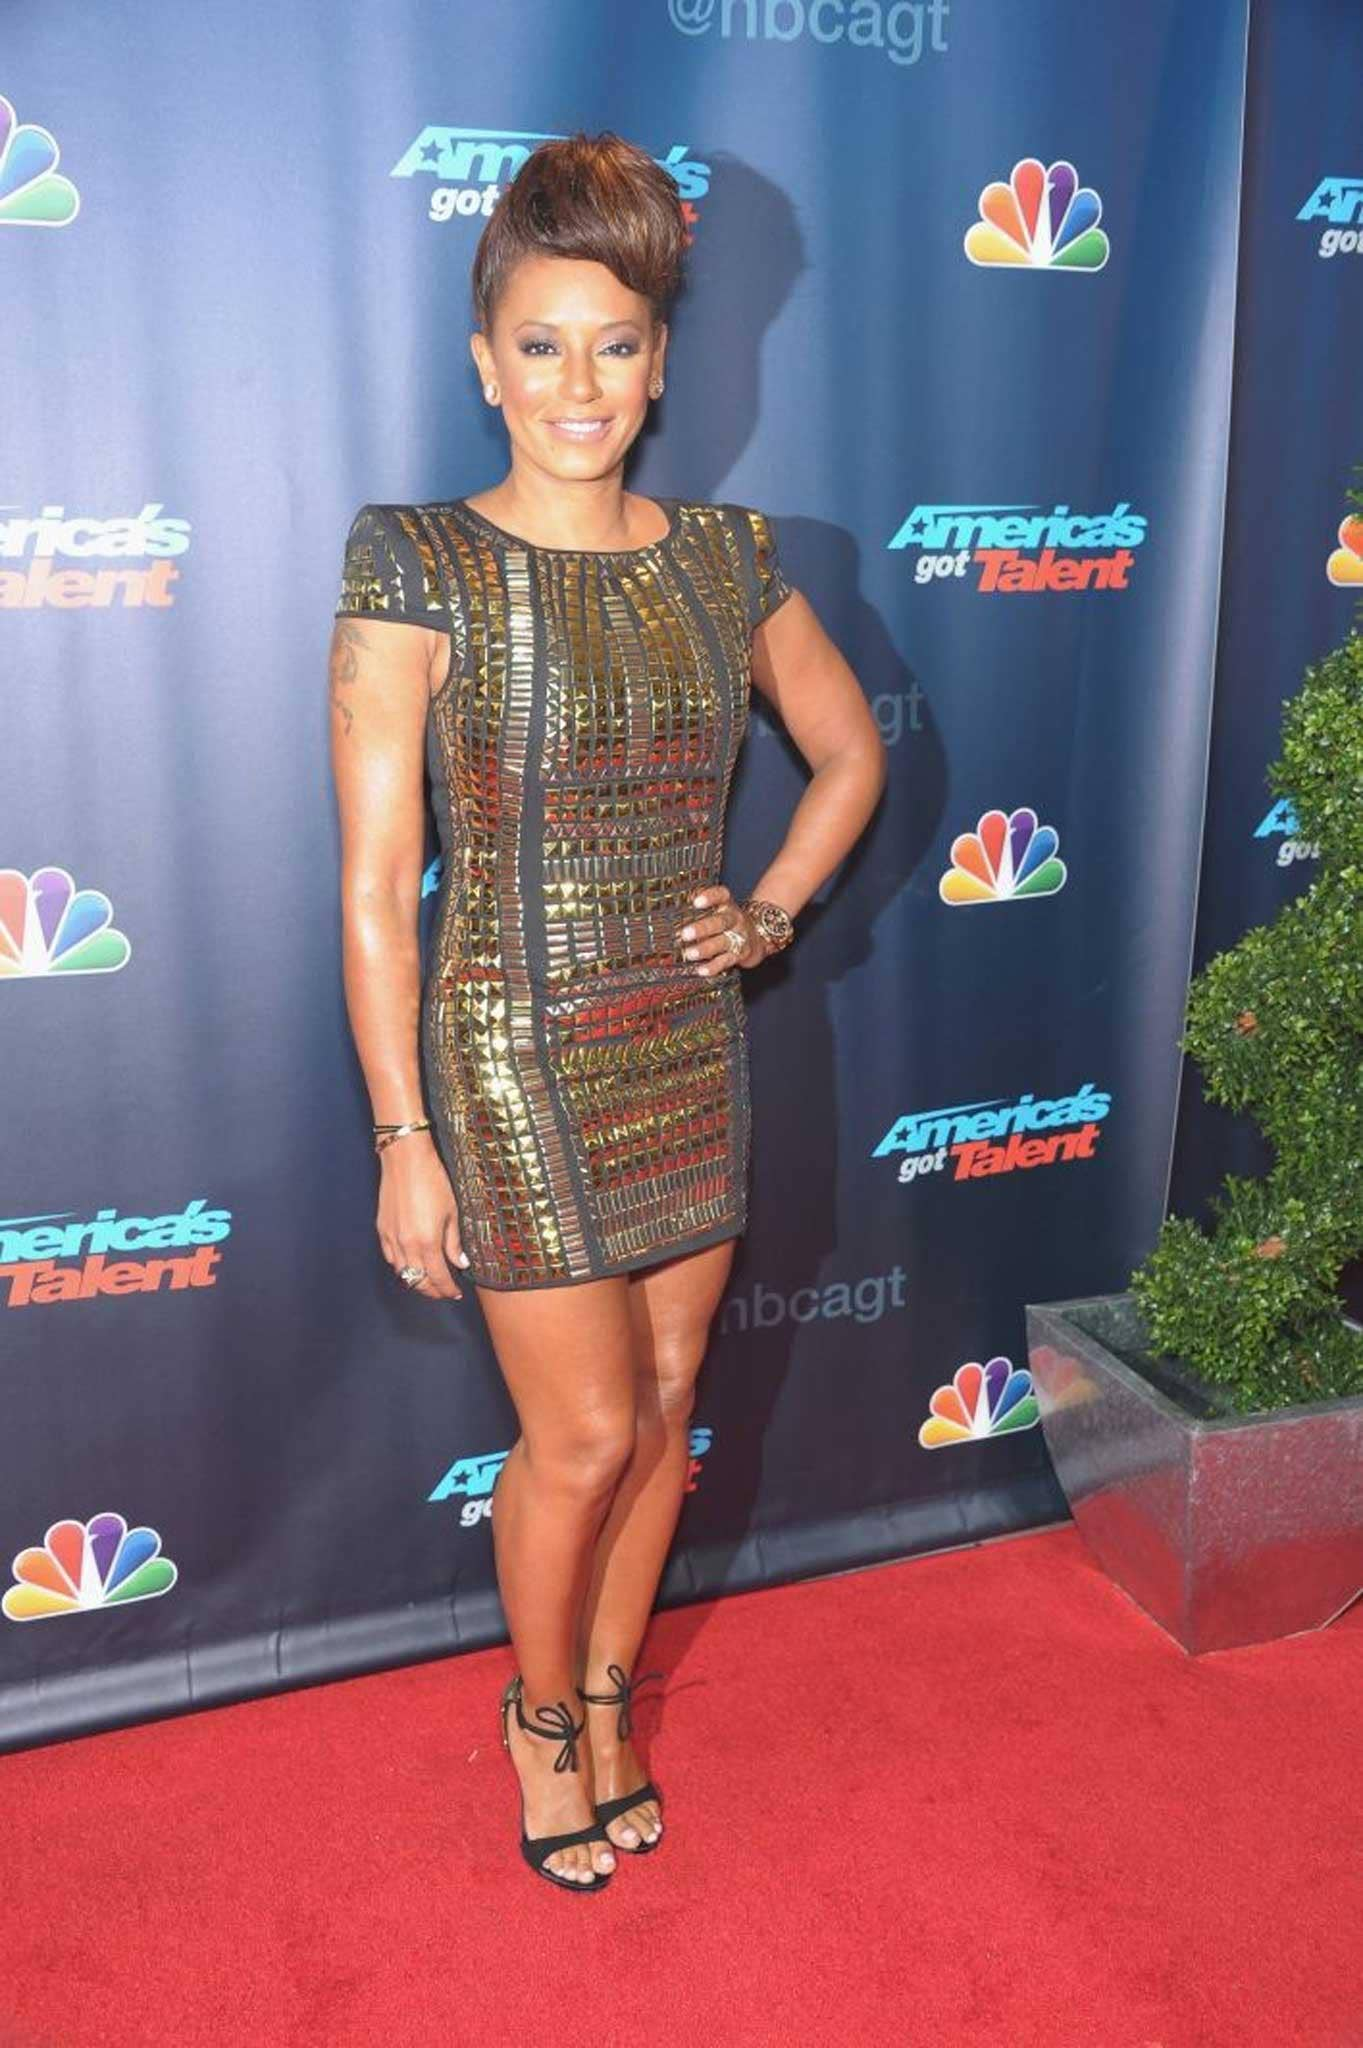 Mel B on the red carpet at Americas Got Talent's pre-show in New York last month